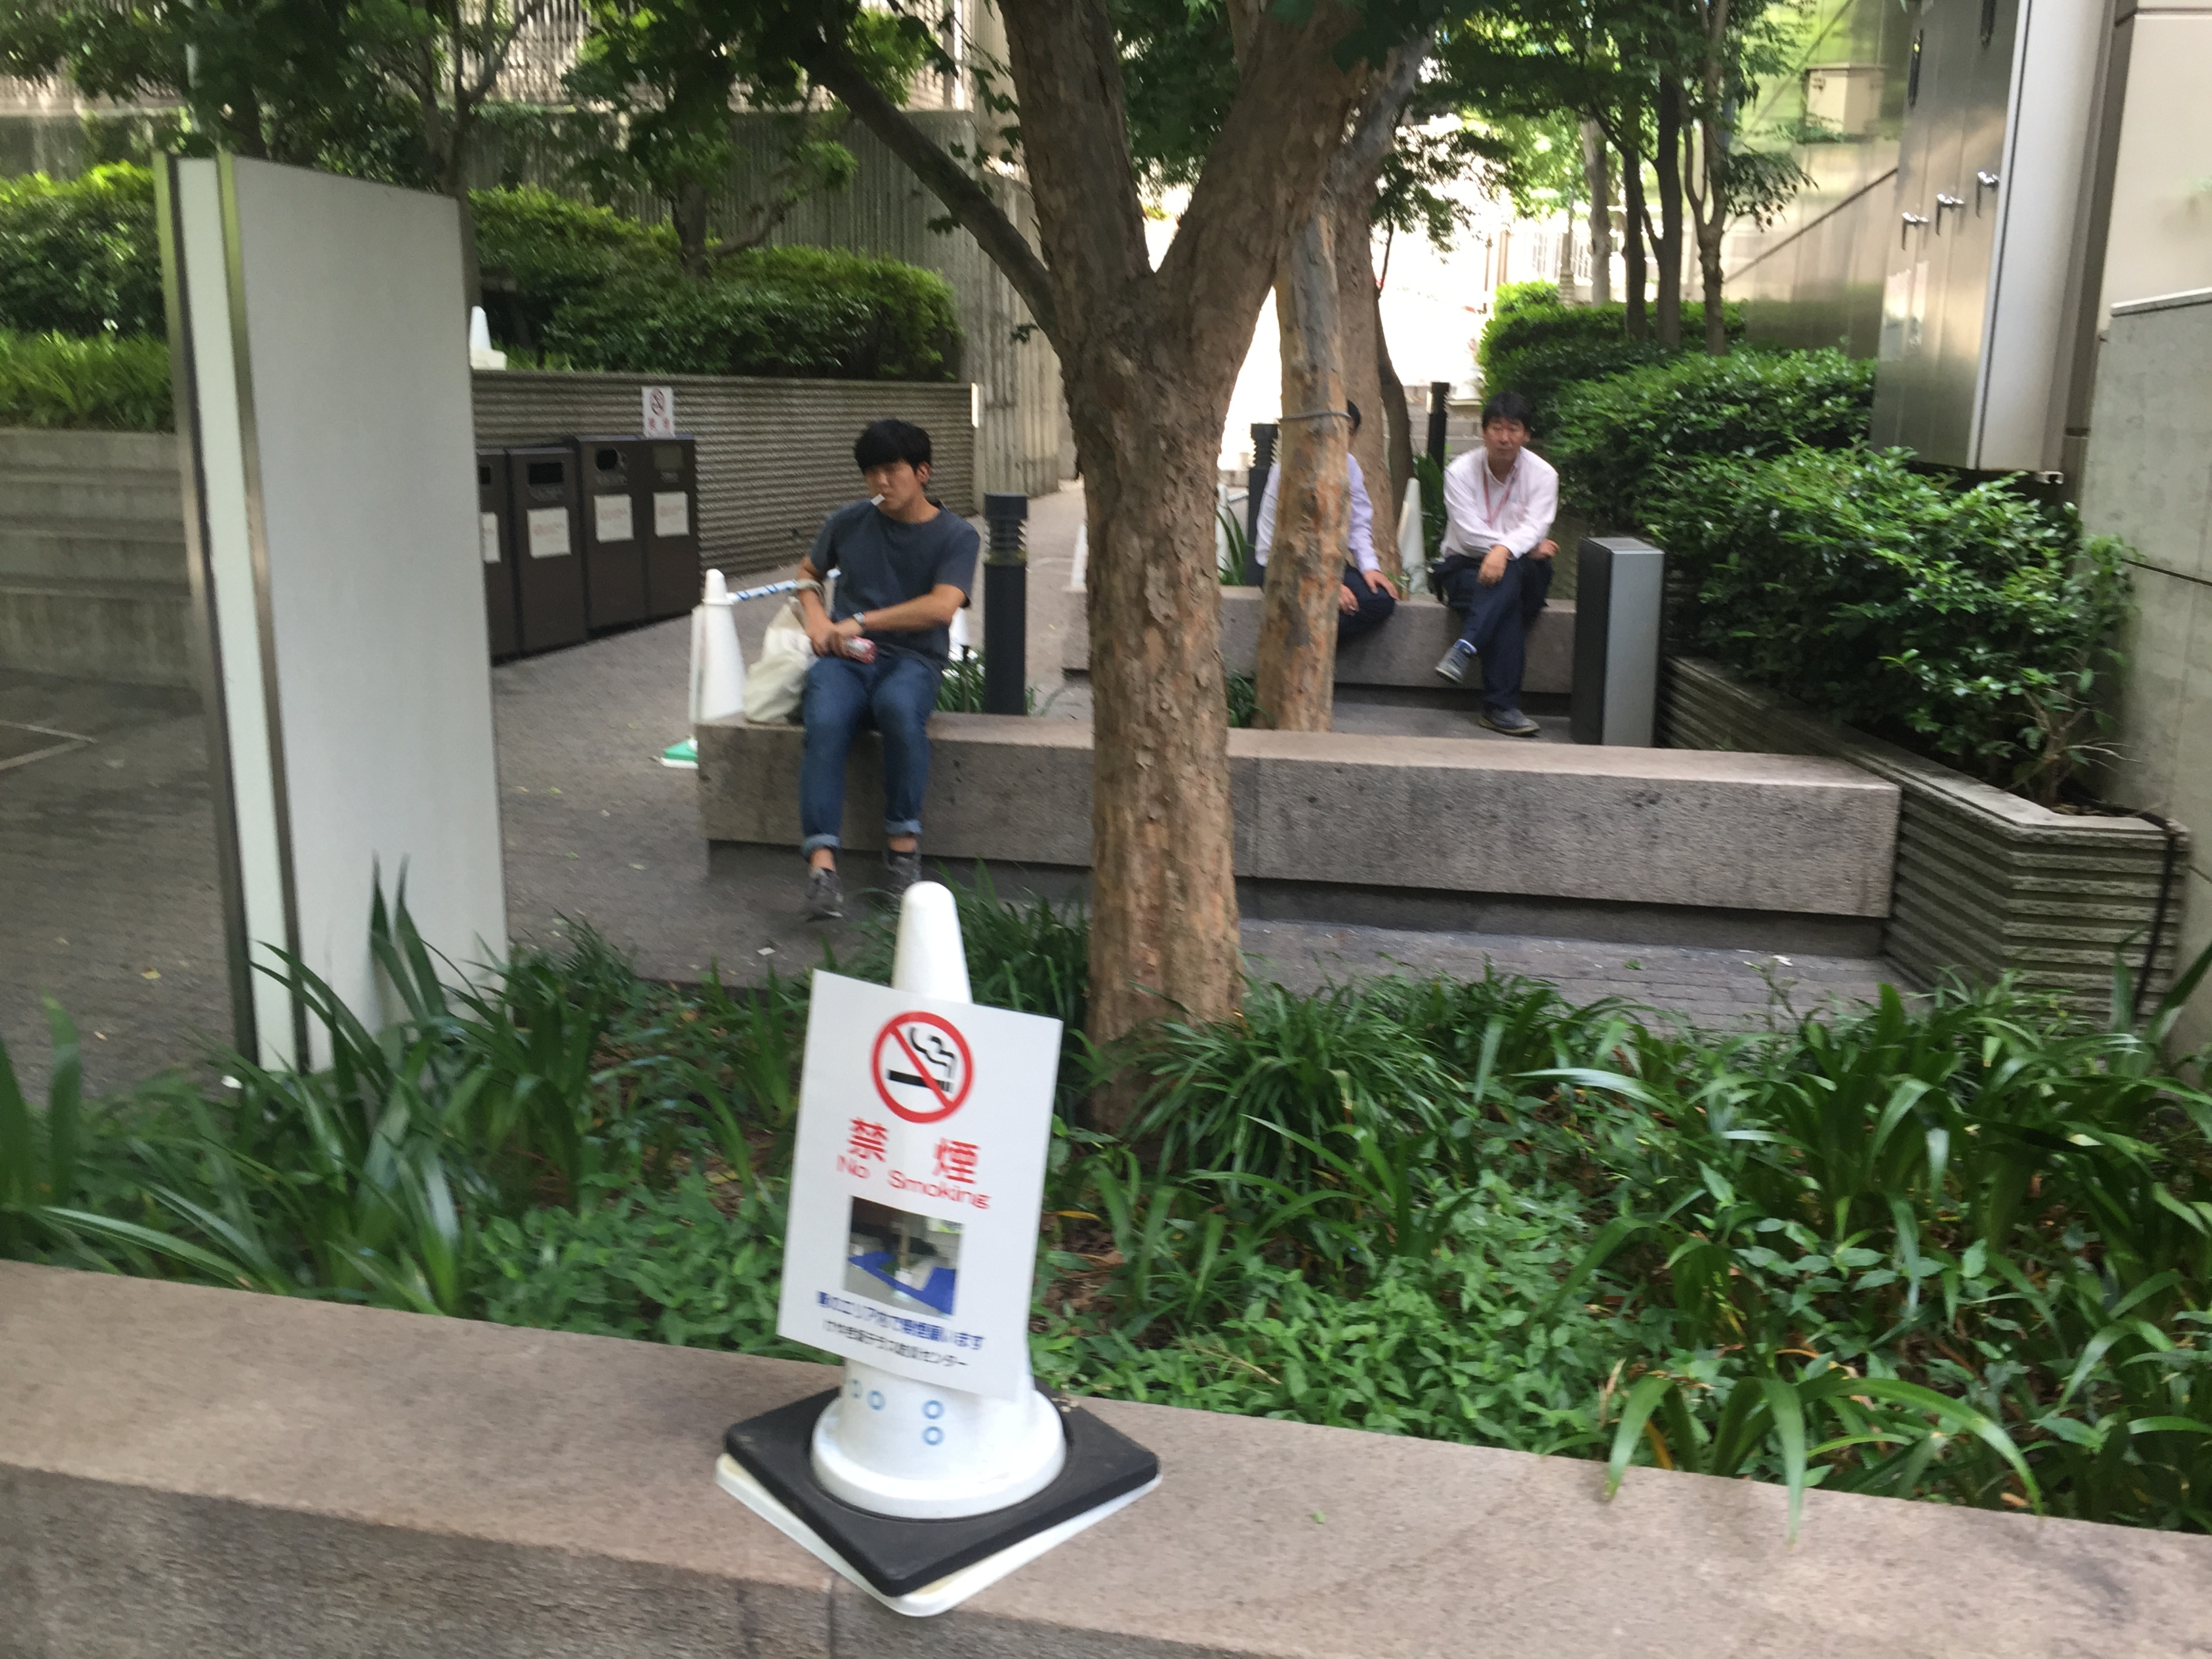 Secondhand Smoke In Japan Decades Behind The Times Katie Anderson